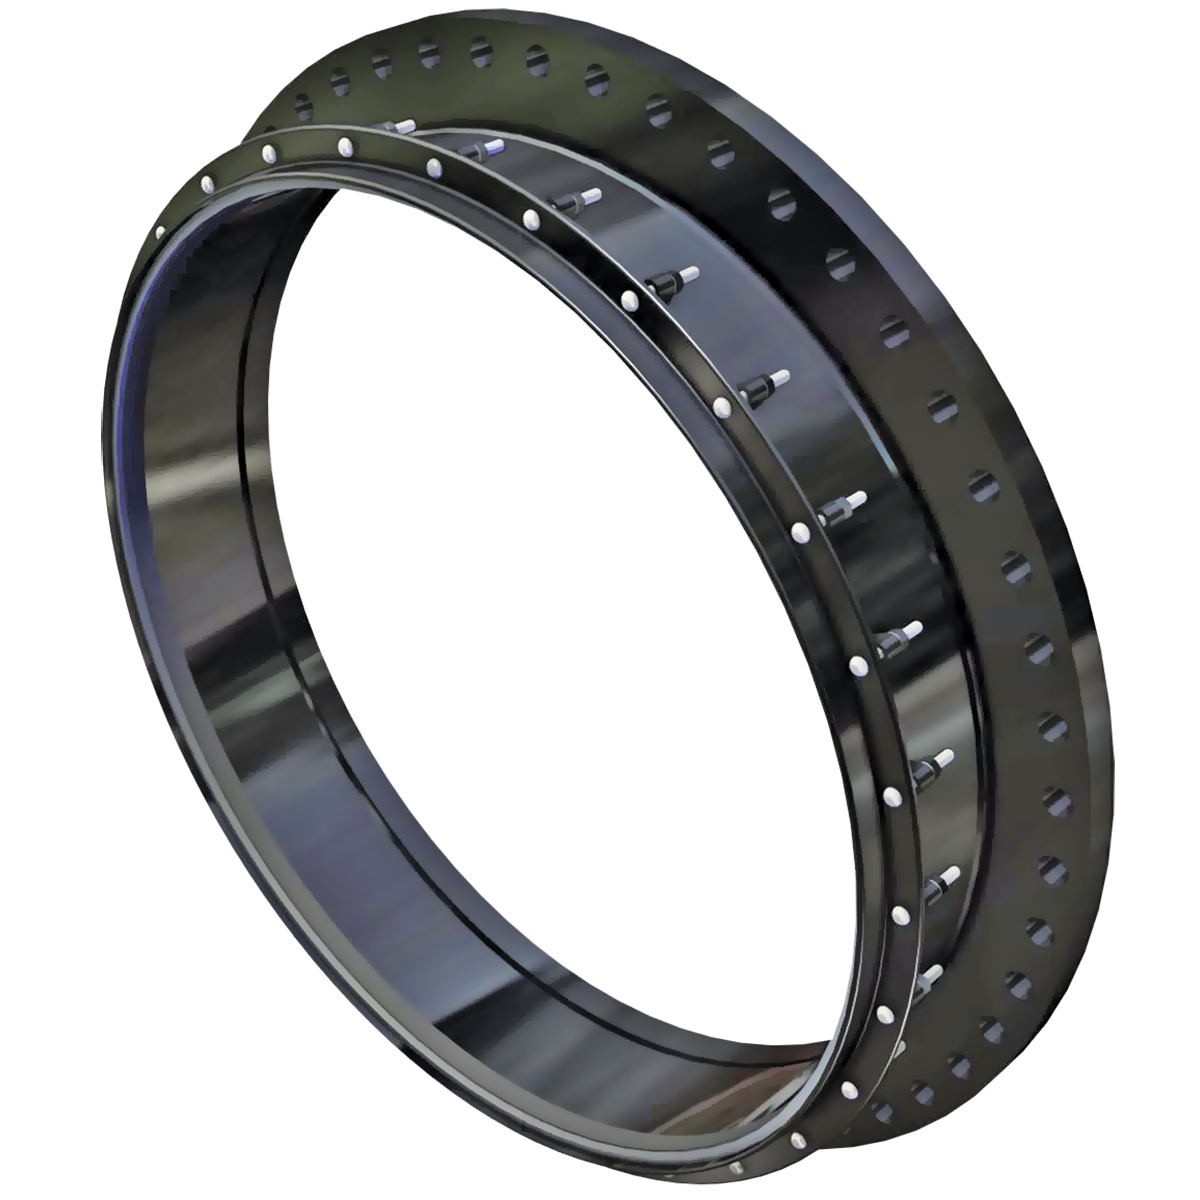 FC400 - Fabricated steel flanged coupling adapter.